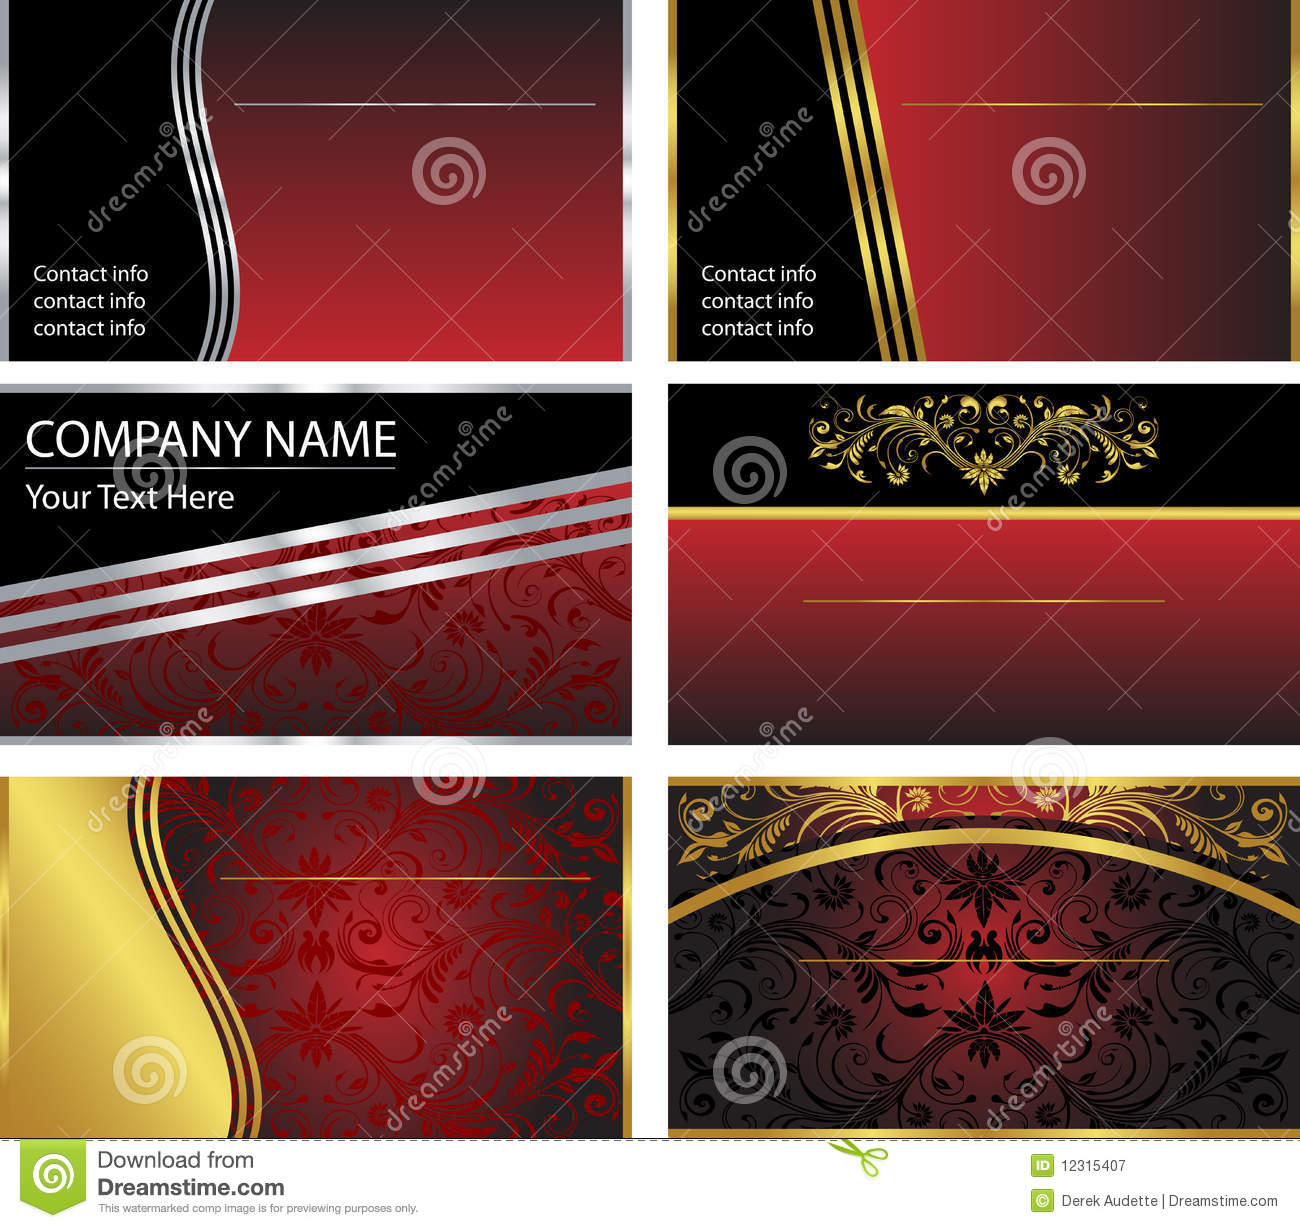 Six vector business card templates stock vector illustration of six vector business card templates accmission Image collections